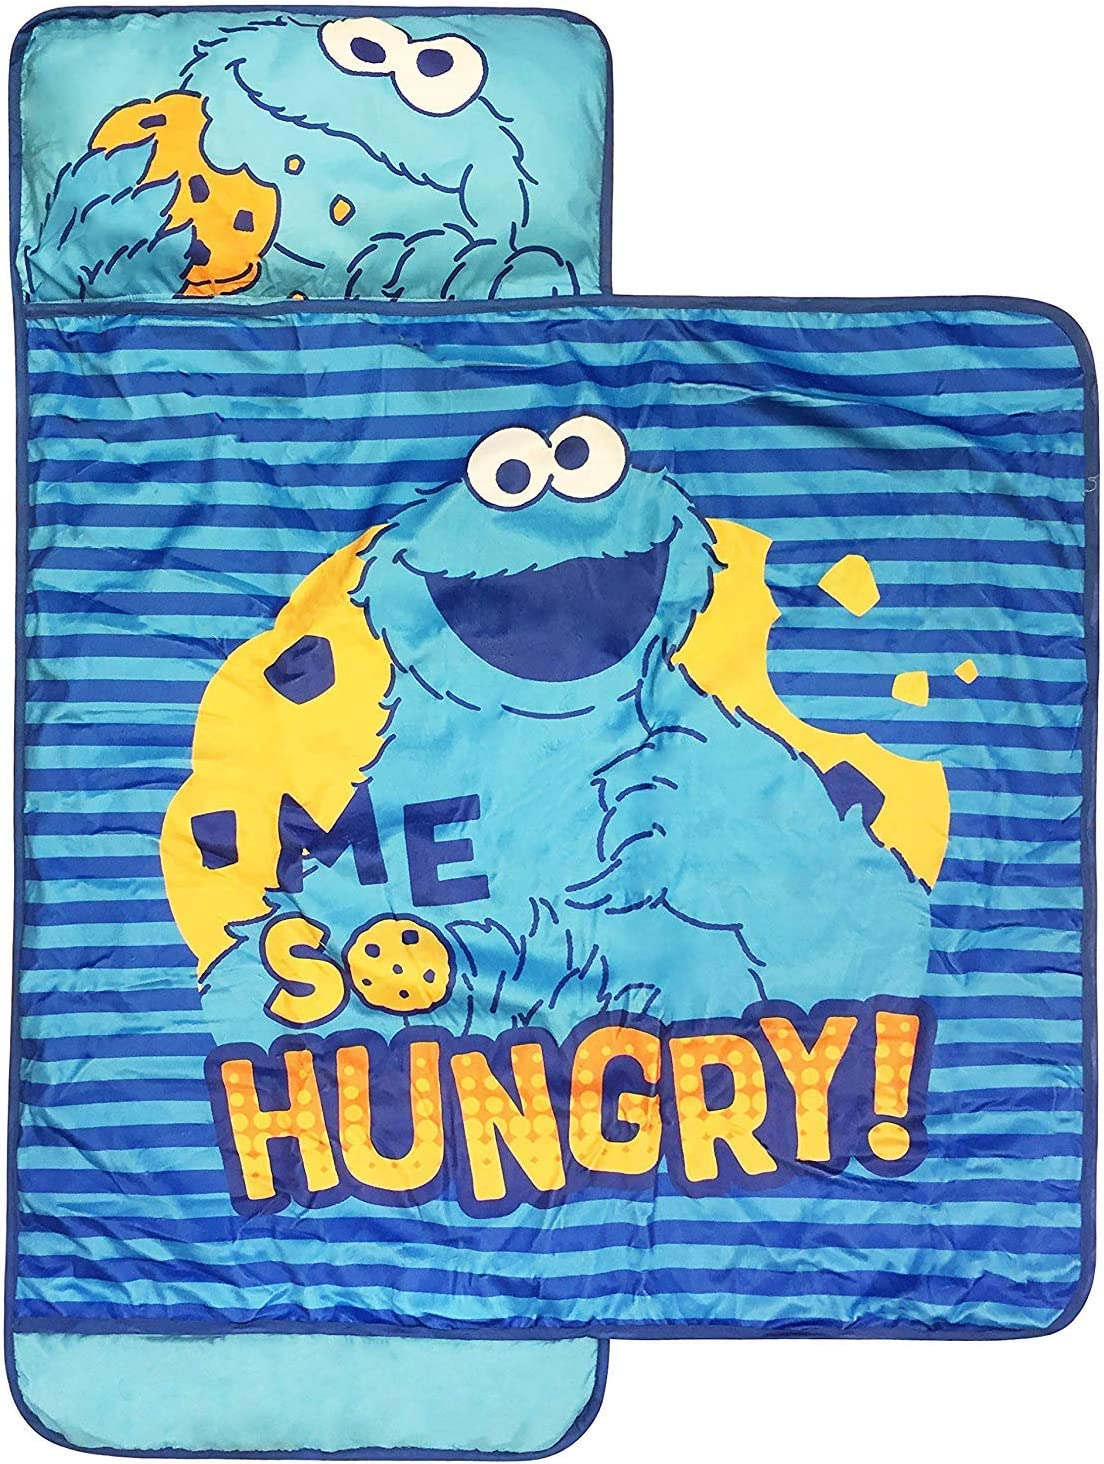 Sesame Street Me So Hungry Nap Mat - Built-in Pillow and Blanket featuring Cookie Monster - Super Soft Microfiber Kids'/Toddler/Children's Bedding, Ages 3-7 (Official Sesame Street Product) [並行輸入品]